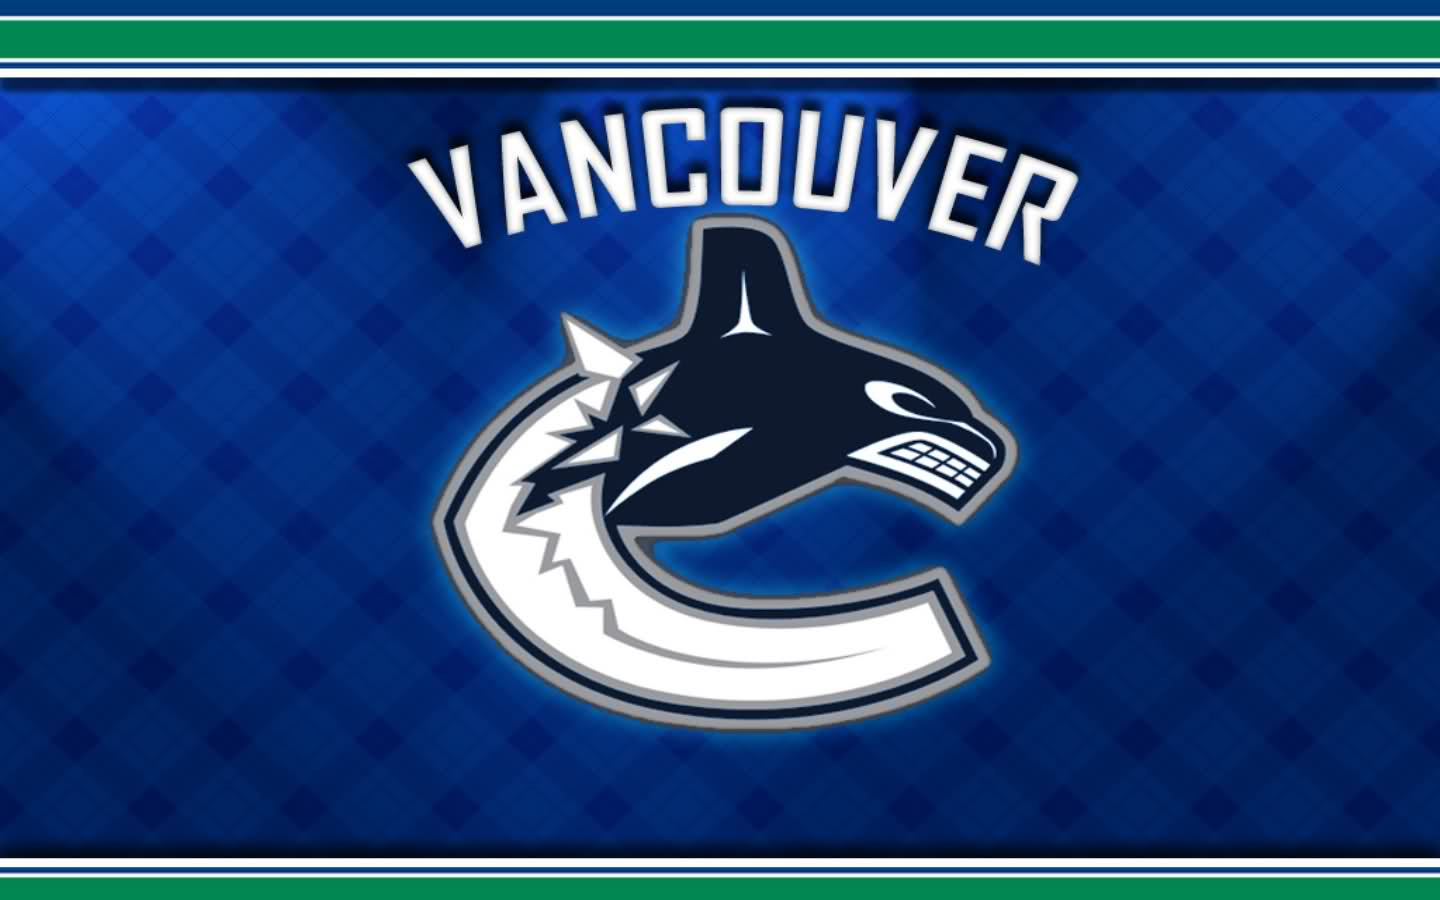 hd canucks wallpaper hd vancouver canucks wallpaper canucks wallpaper 1440x900